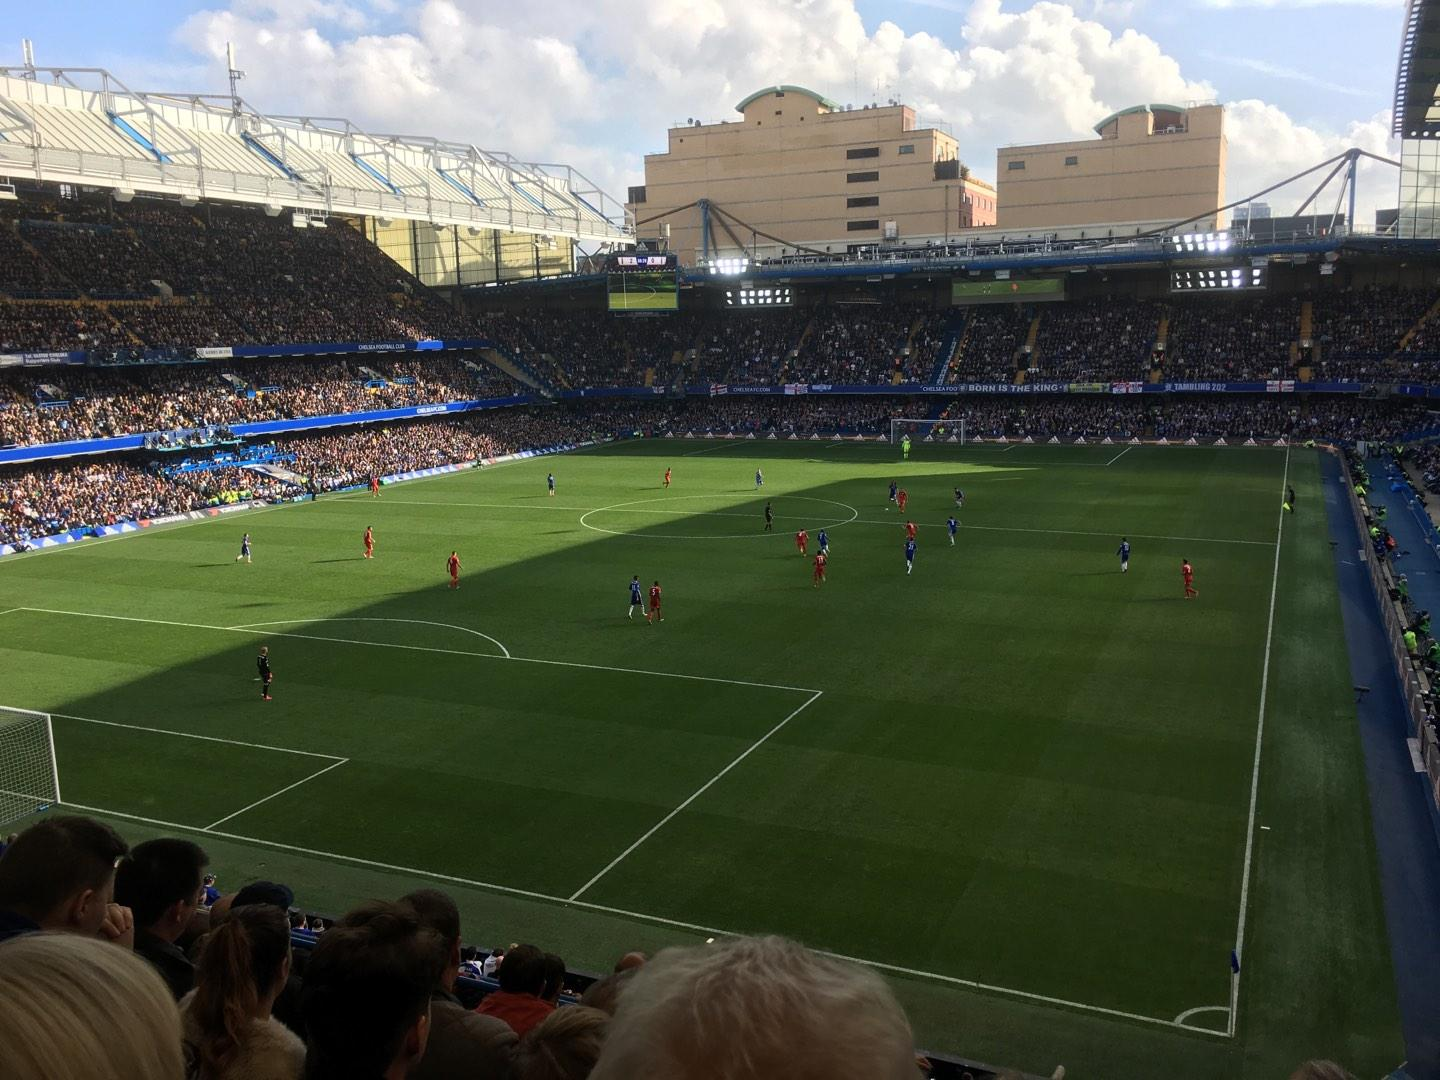 Stamford Bridge Section U09 Row G Seat 317